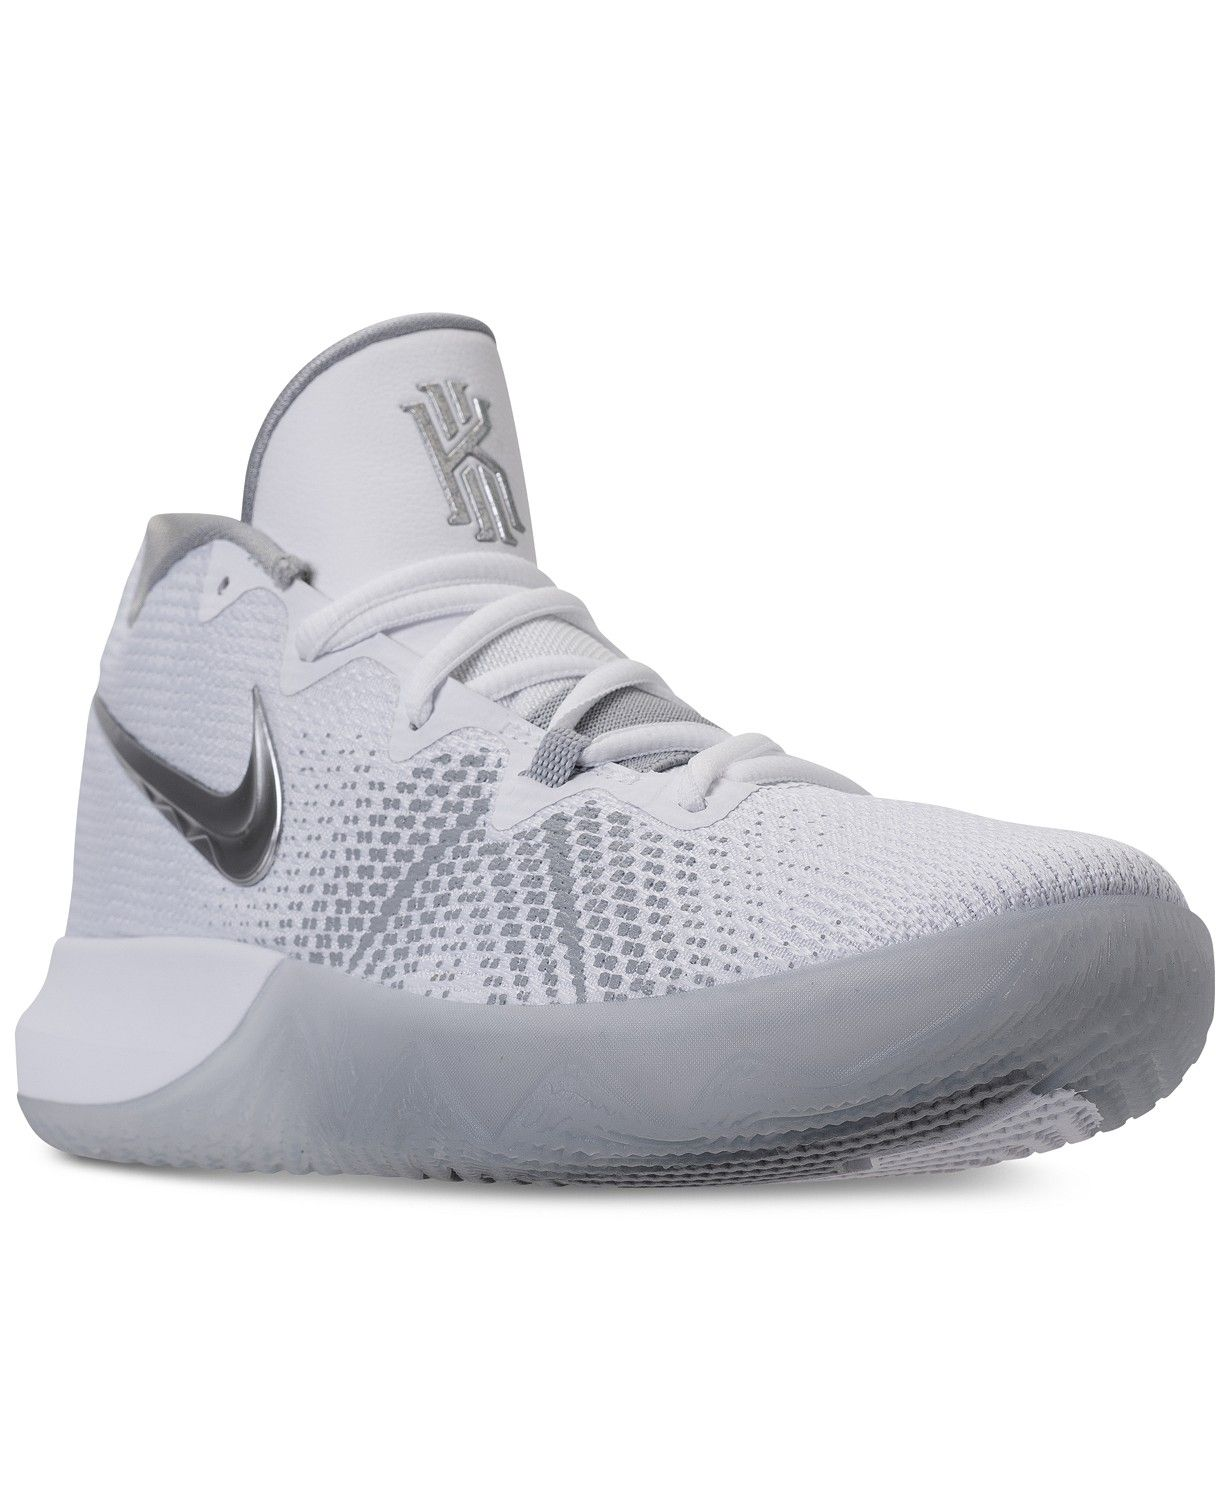 35e888f8d2ad Nike Men s Kyrie Flytrap Basketball Sneakers from Finish Line - Finish Line  Athletic Shoes - Men - Macy s